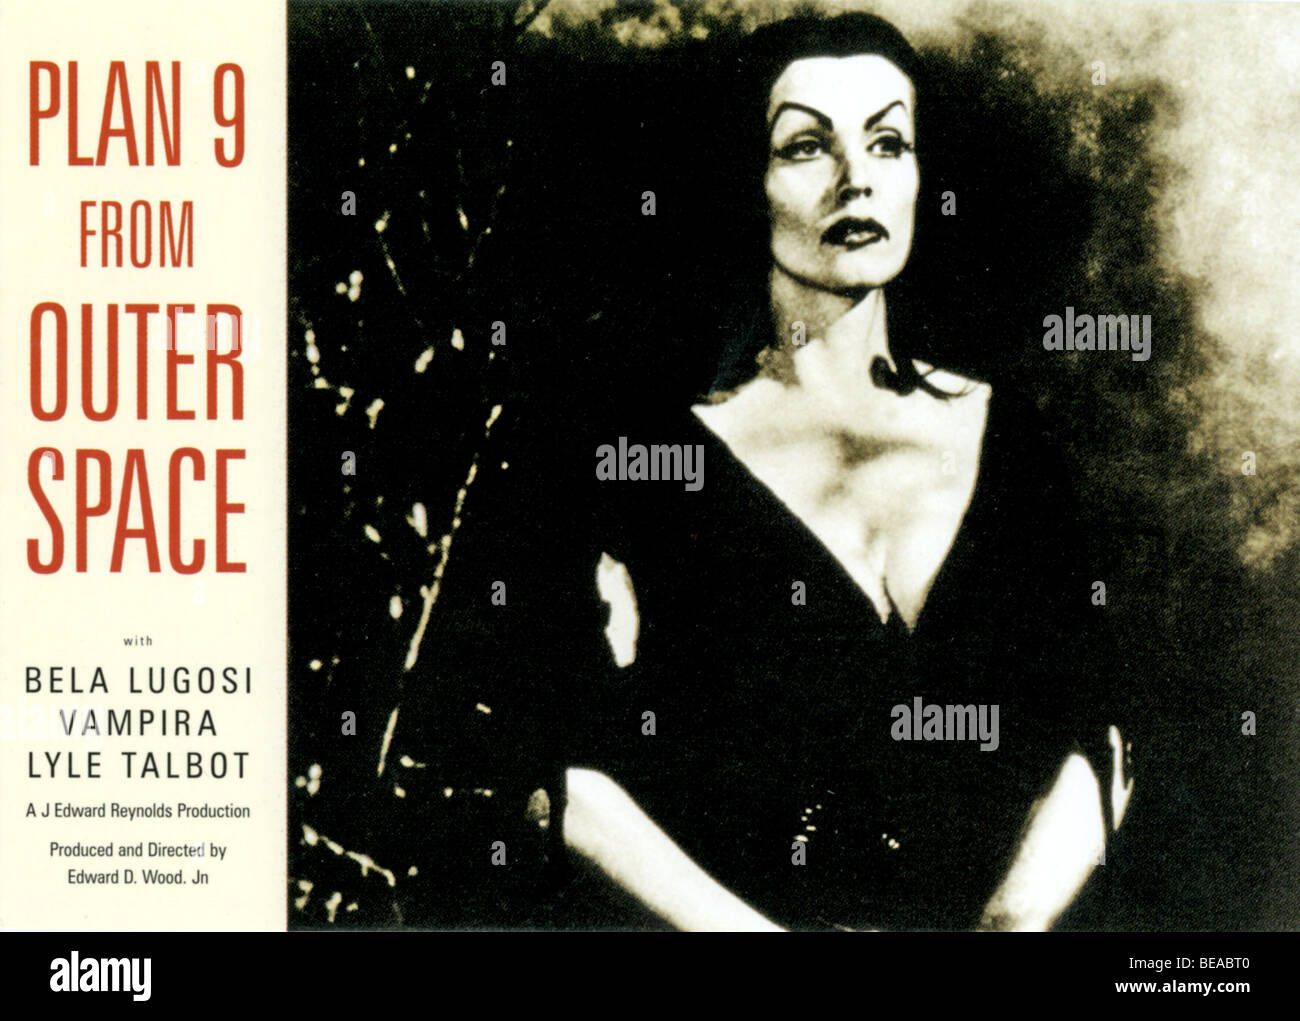 PLAN 9 FROM OUTER SPACE - 1958 Wade Williams film - Stock Image